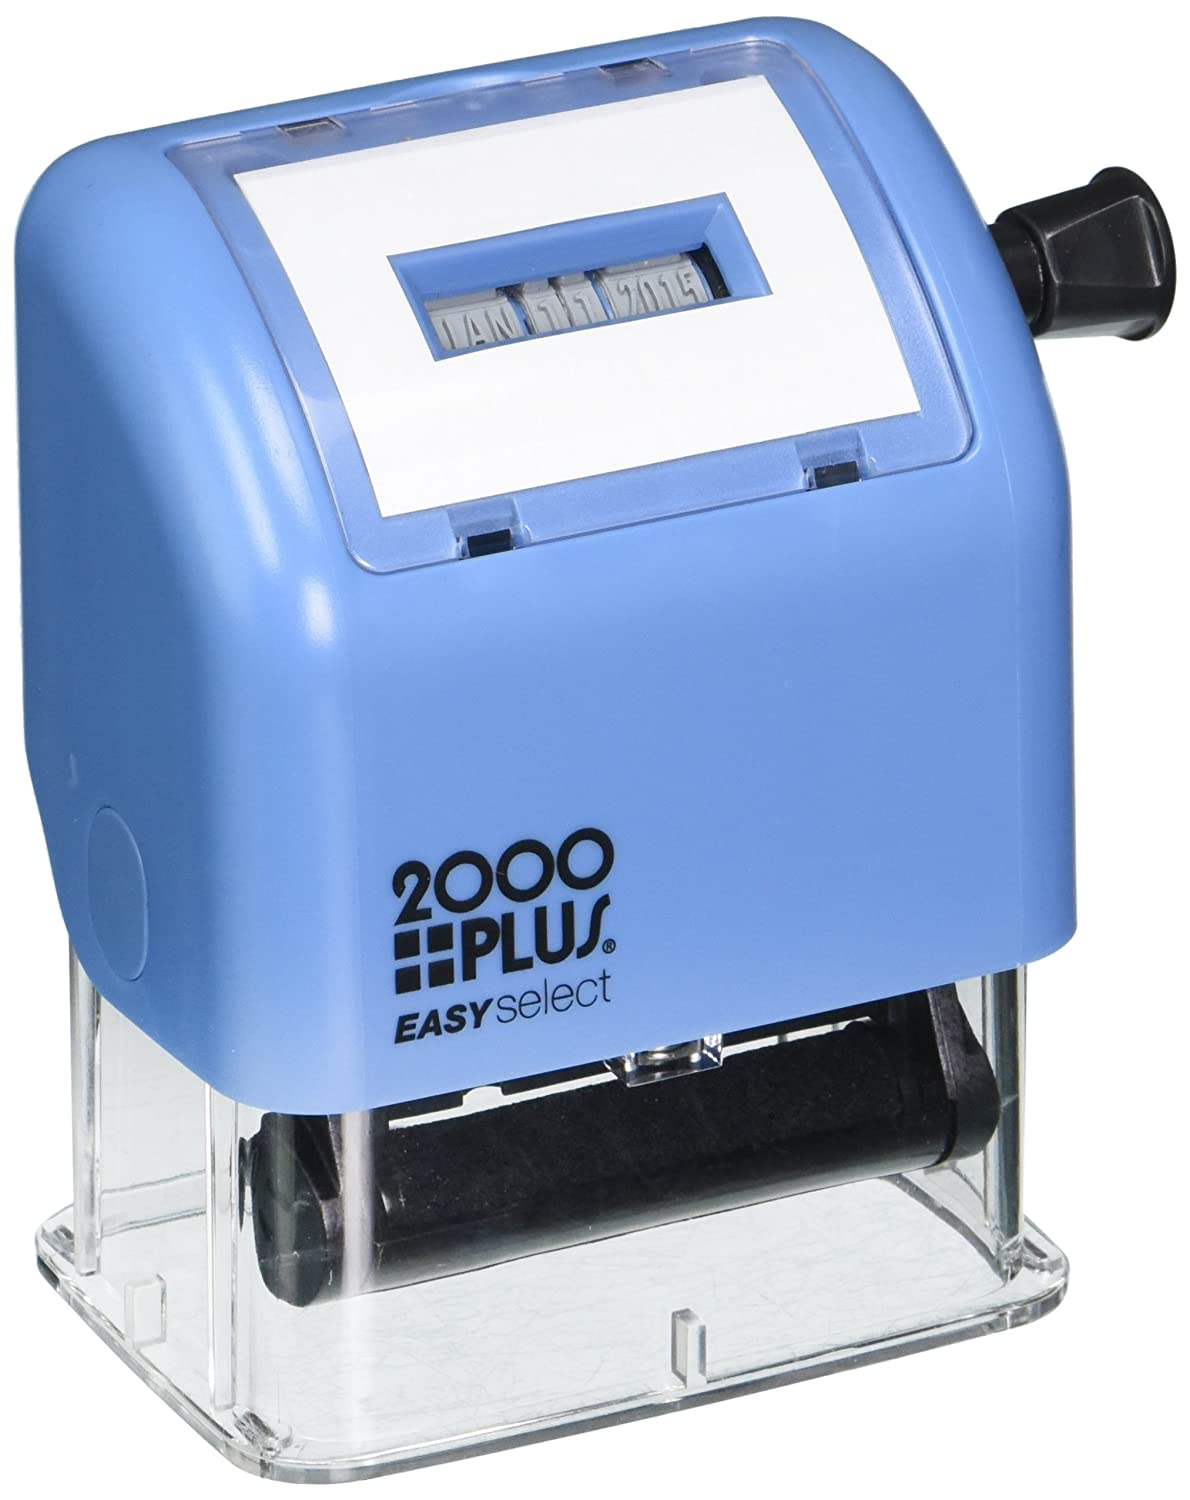 CONSOLIDATED STAMP Cosco 011091/2 2000 Plus Easy Select Dater (COS011091) CONSOLIDATED STAMP MFG. CO.